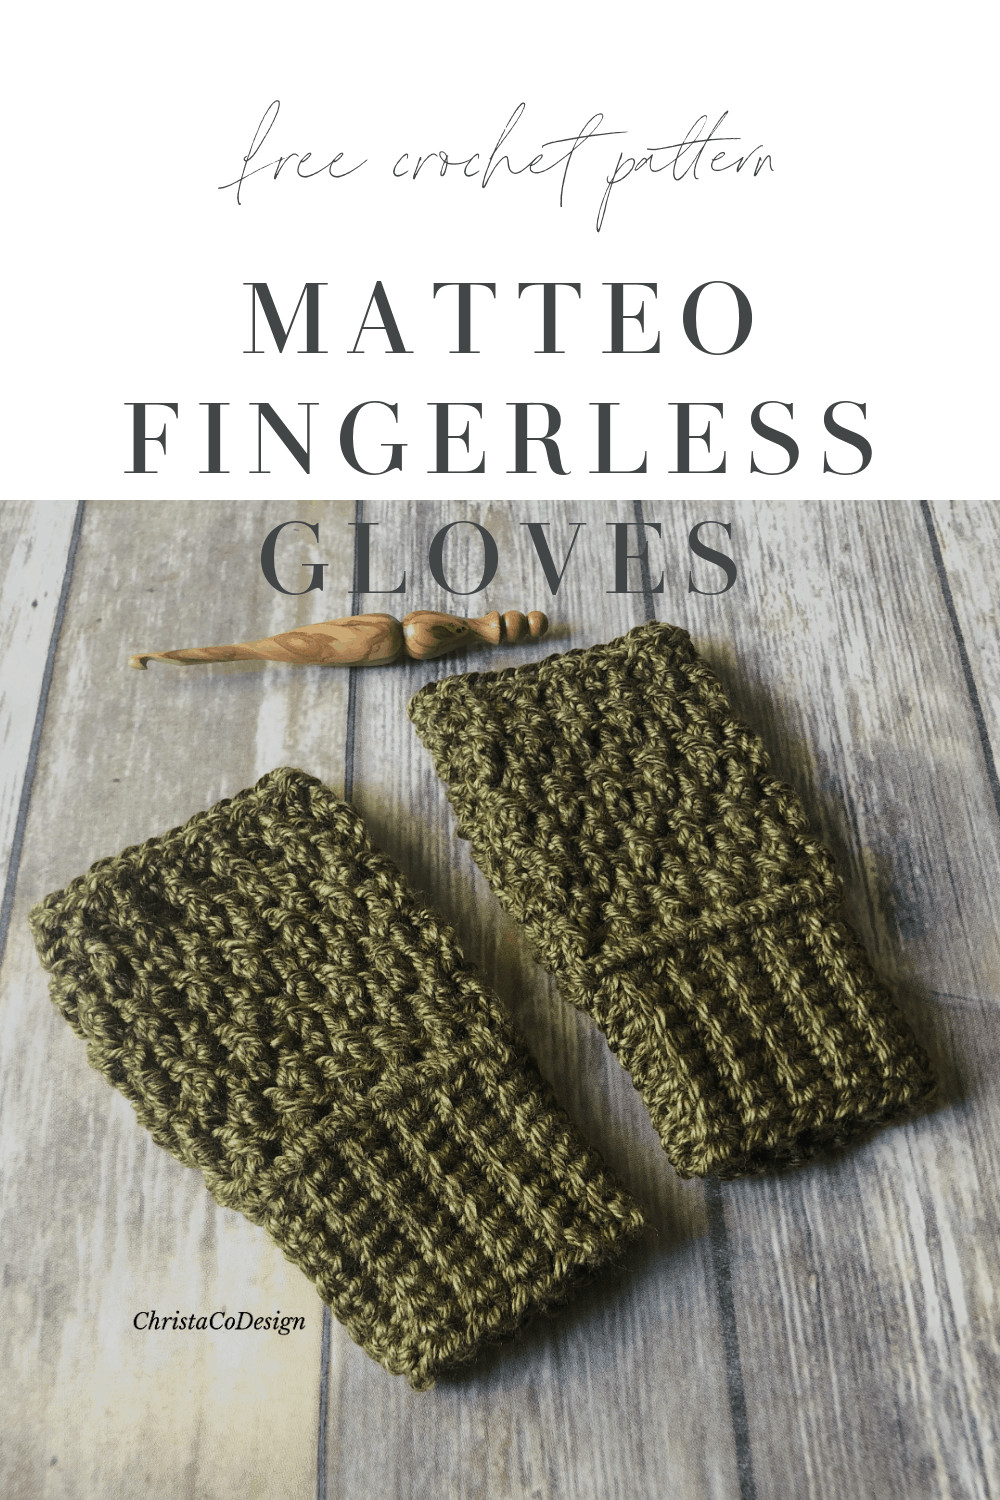 picture of pin image with text free crochet pattern Matteo fingerless gloves